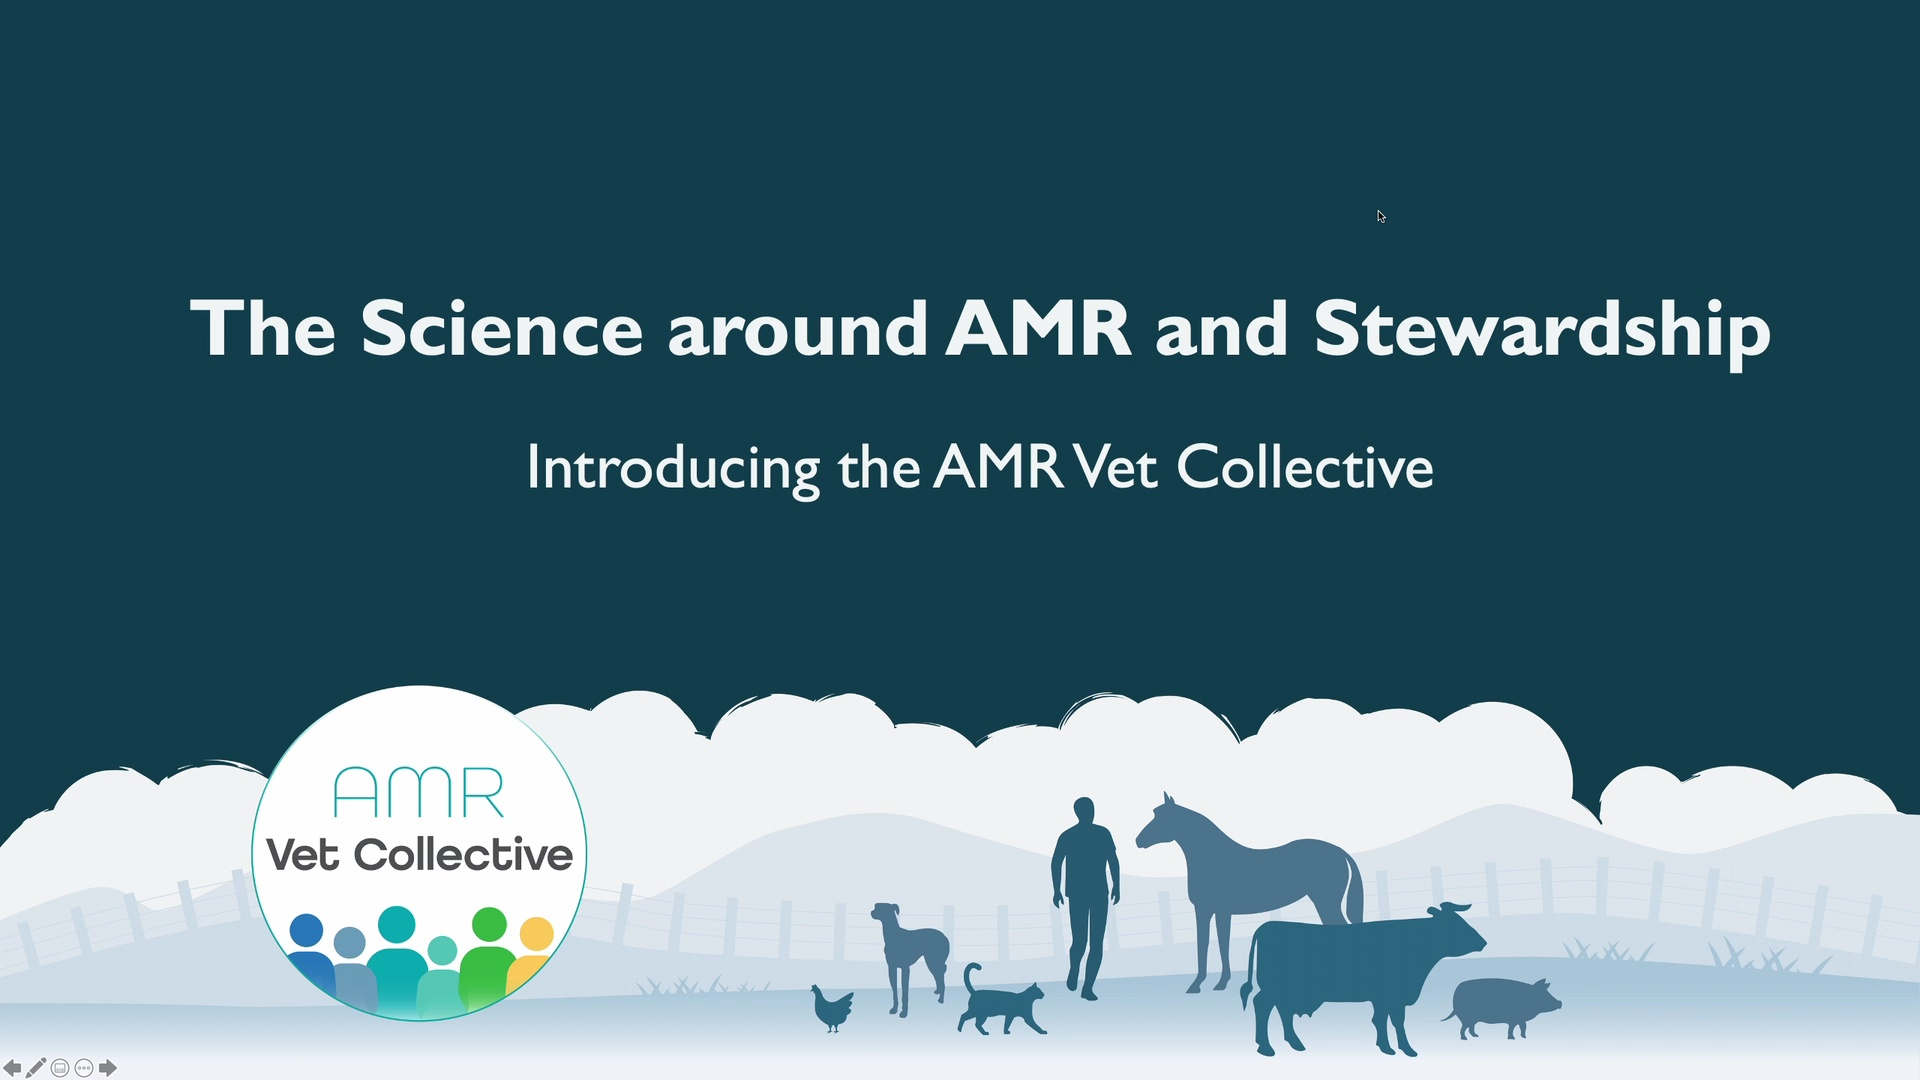 The Science Around AMR and Stewardship WebinarLIVE!